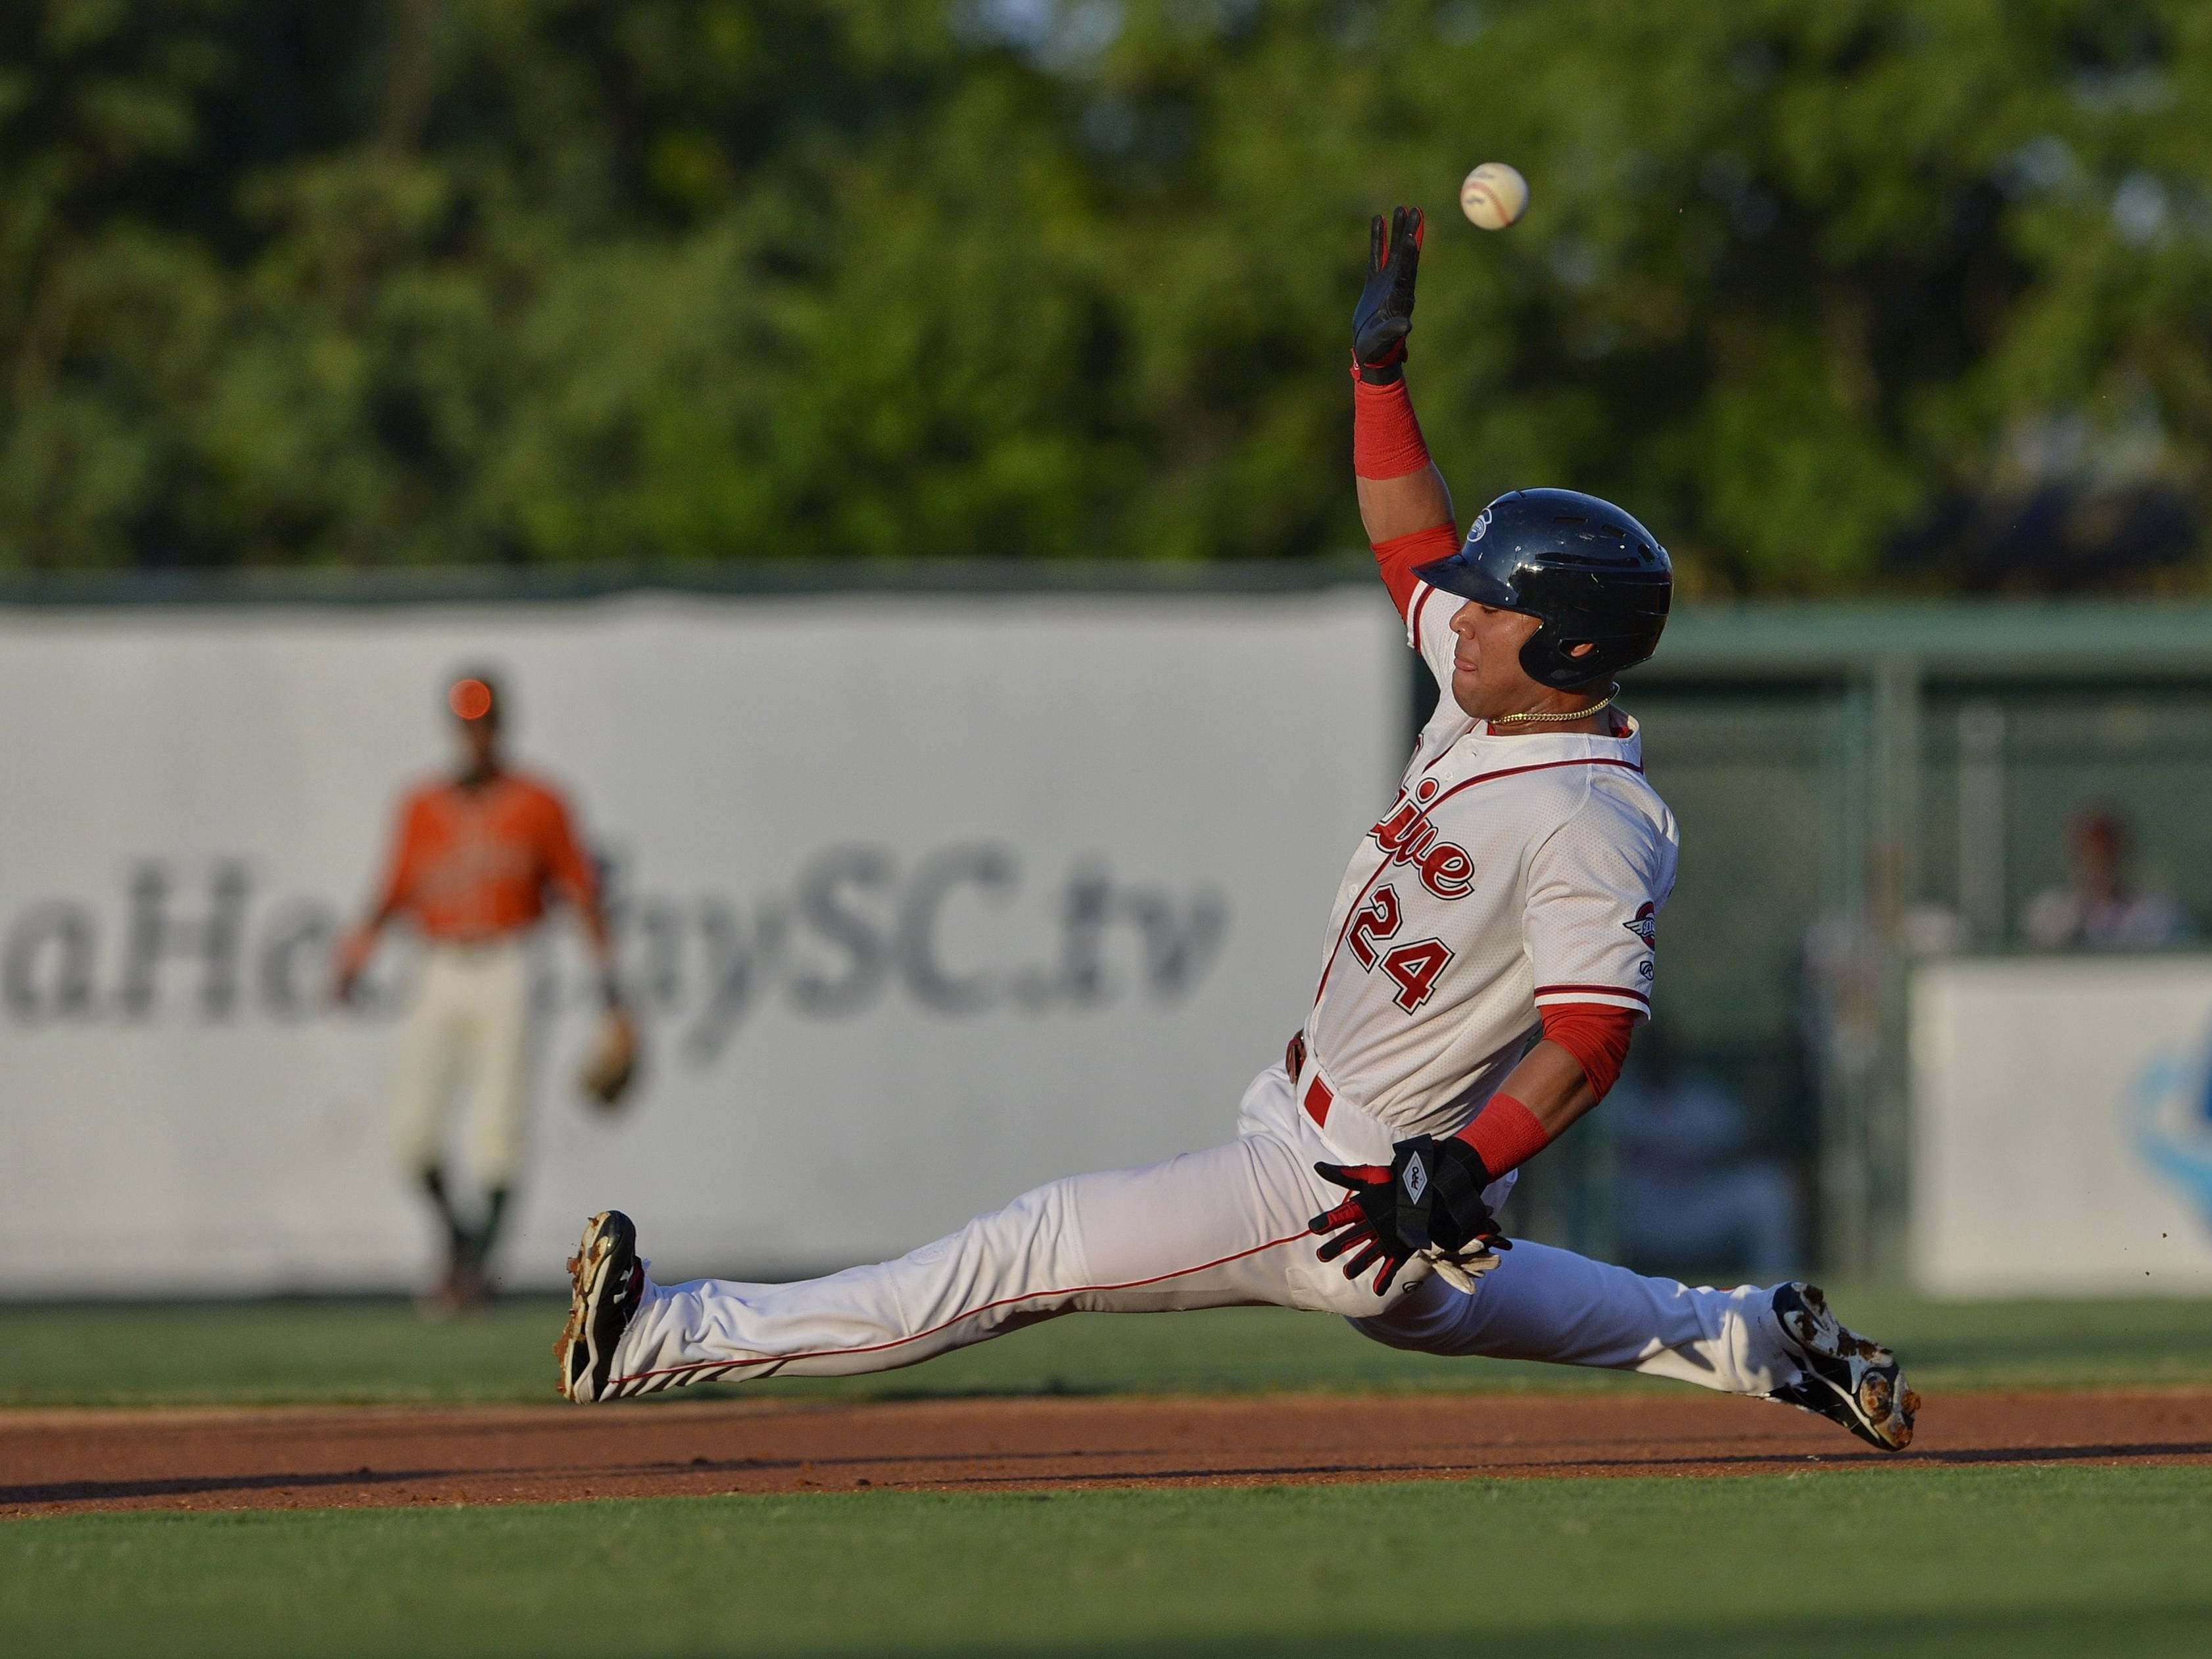 Greenville's Yoan Moncada slides into second base for his 41st stolen base during the Drive's game Tuesday against the Greensboro Grasshoppers at Fluor Field.